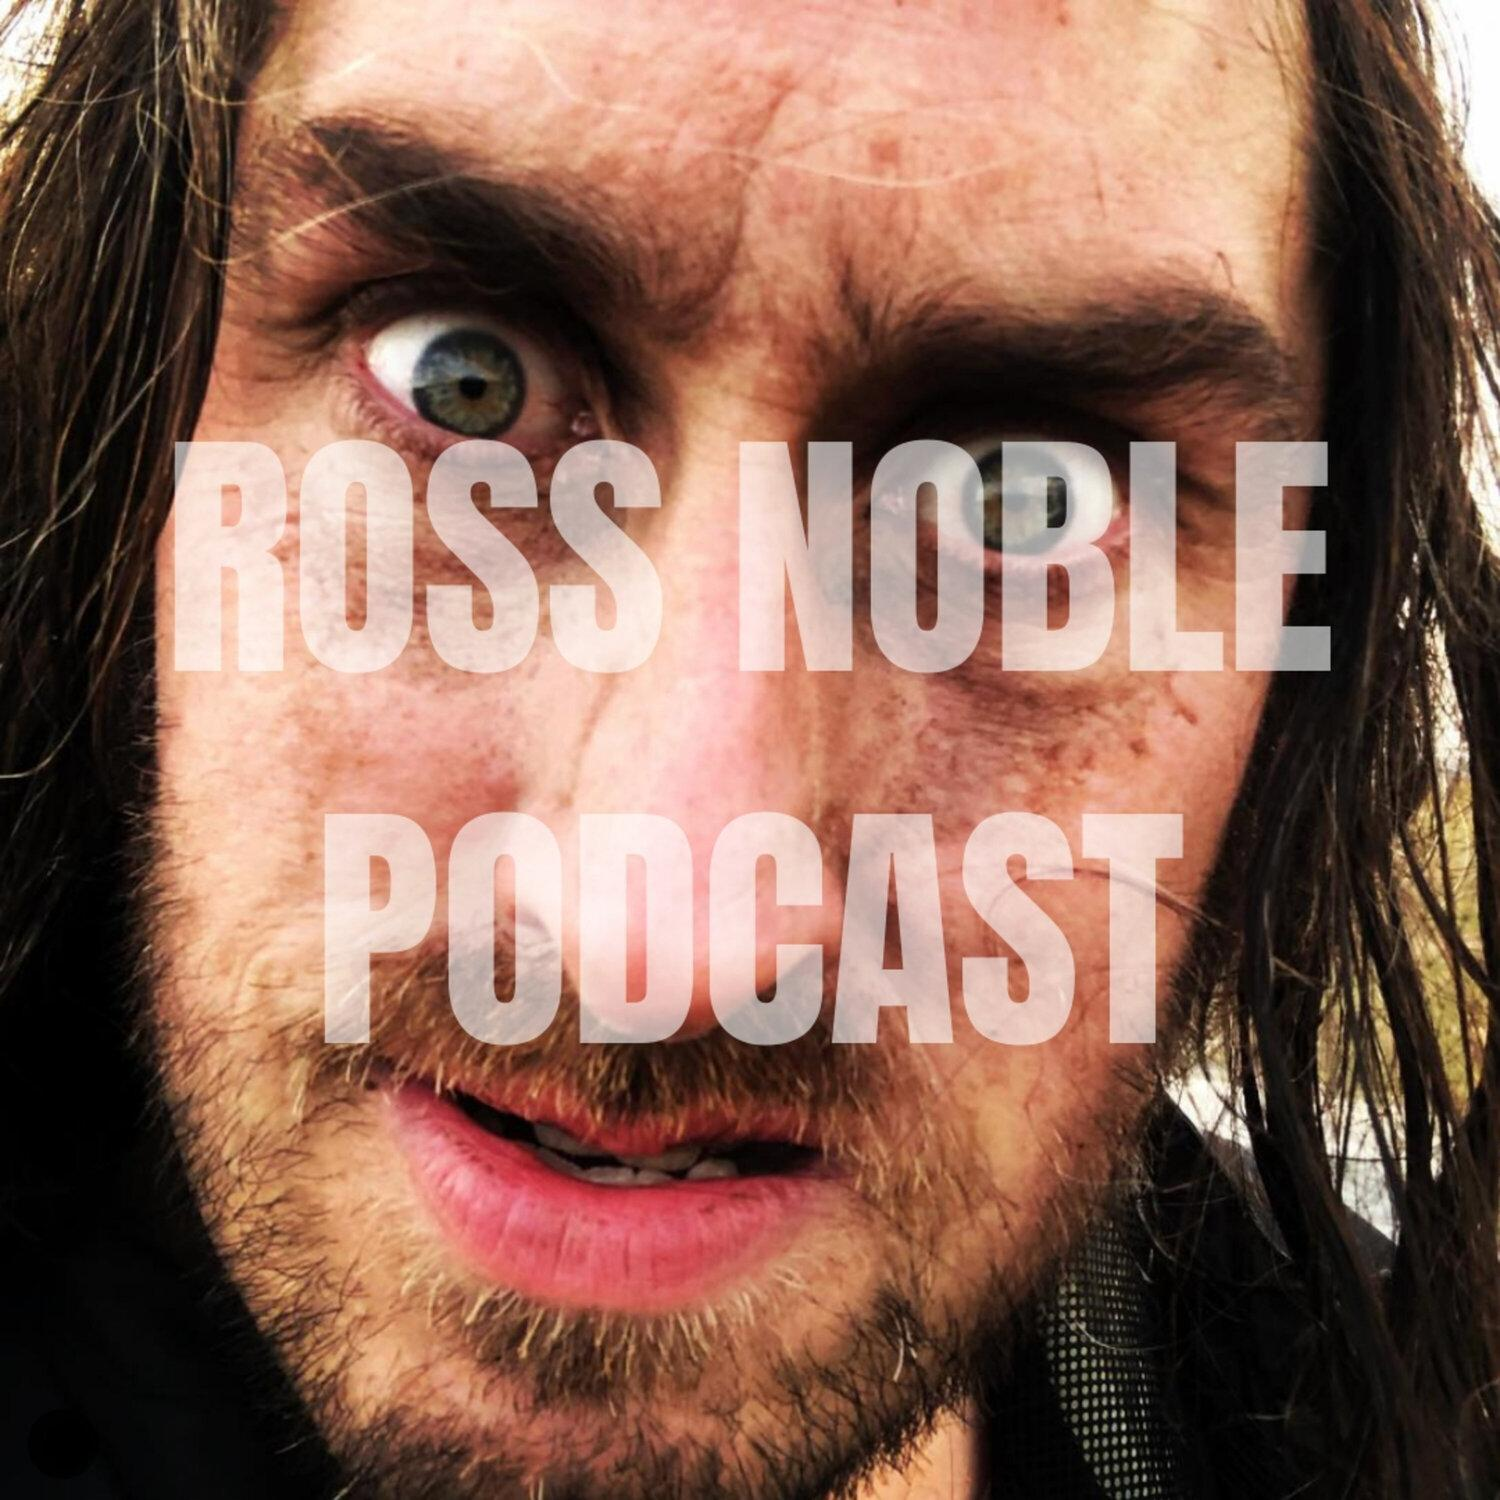 rsz_ross_noble_podcast.jpg